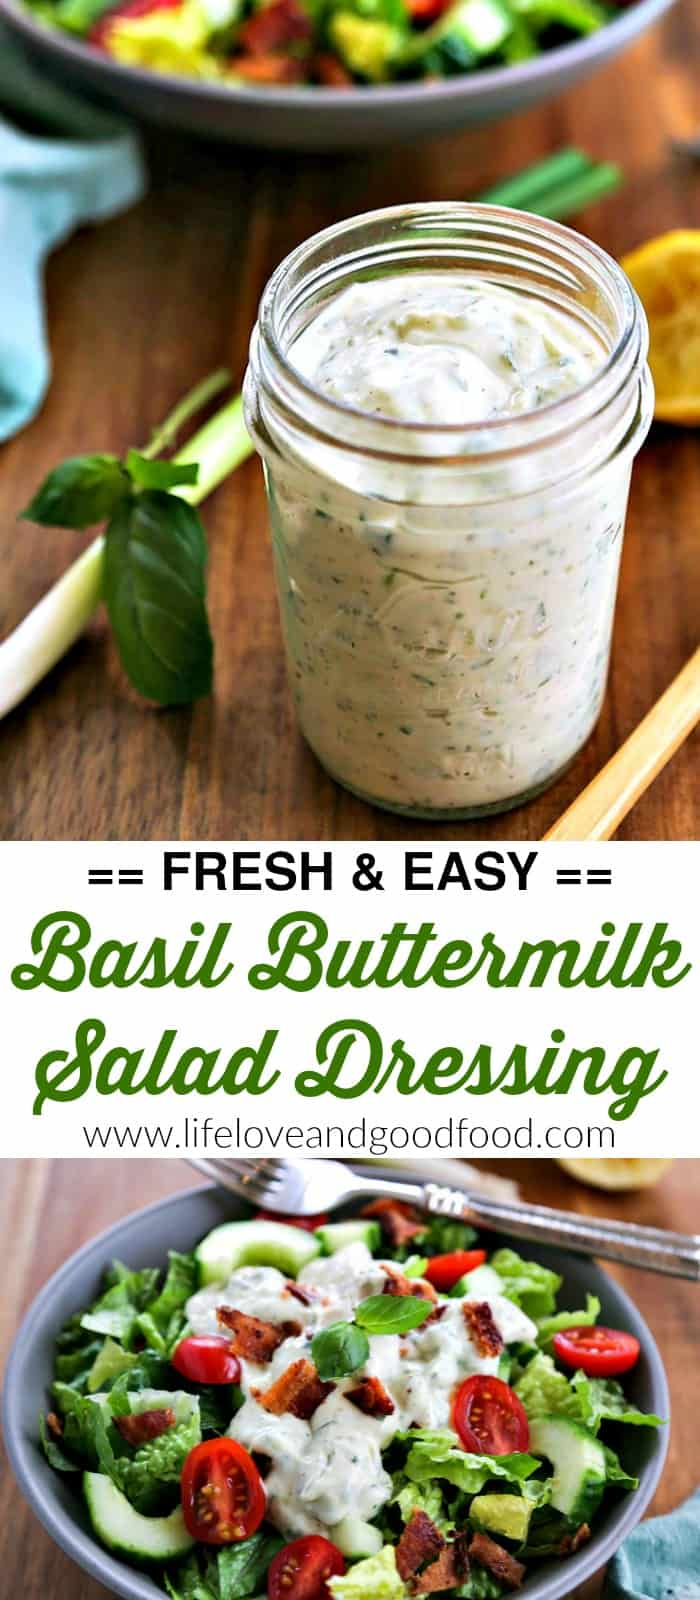 Basil Buttermilk Dressing. Welcome Spring with fresh salads topped with a delicious homemade dressing blended up with fresh herbs, garlic, and tangy buttermilk.